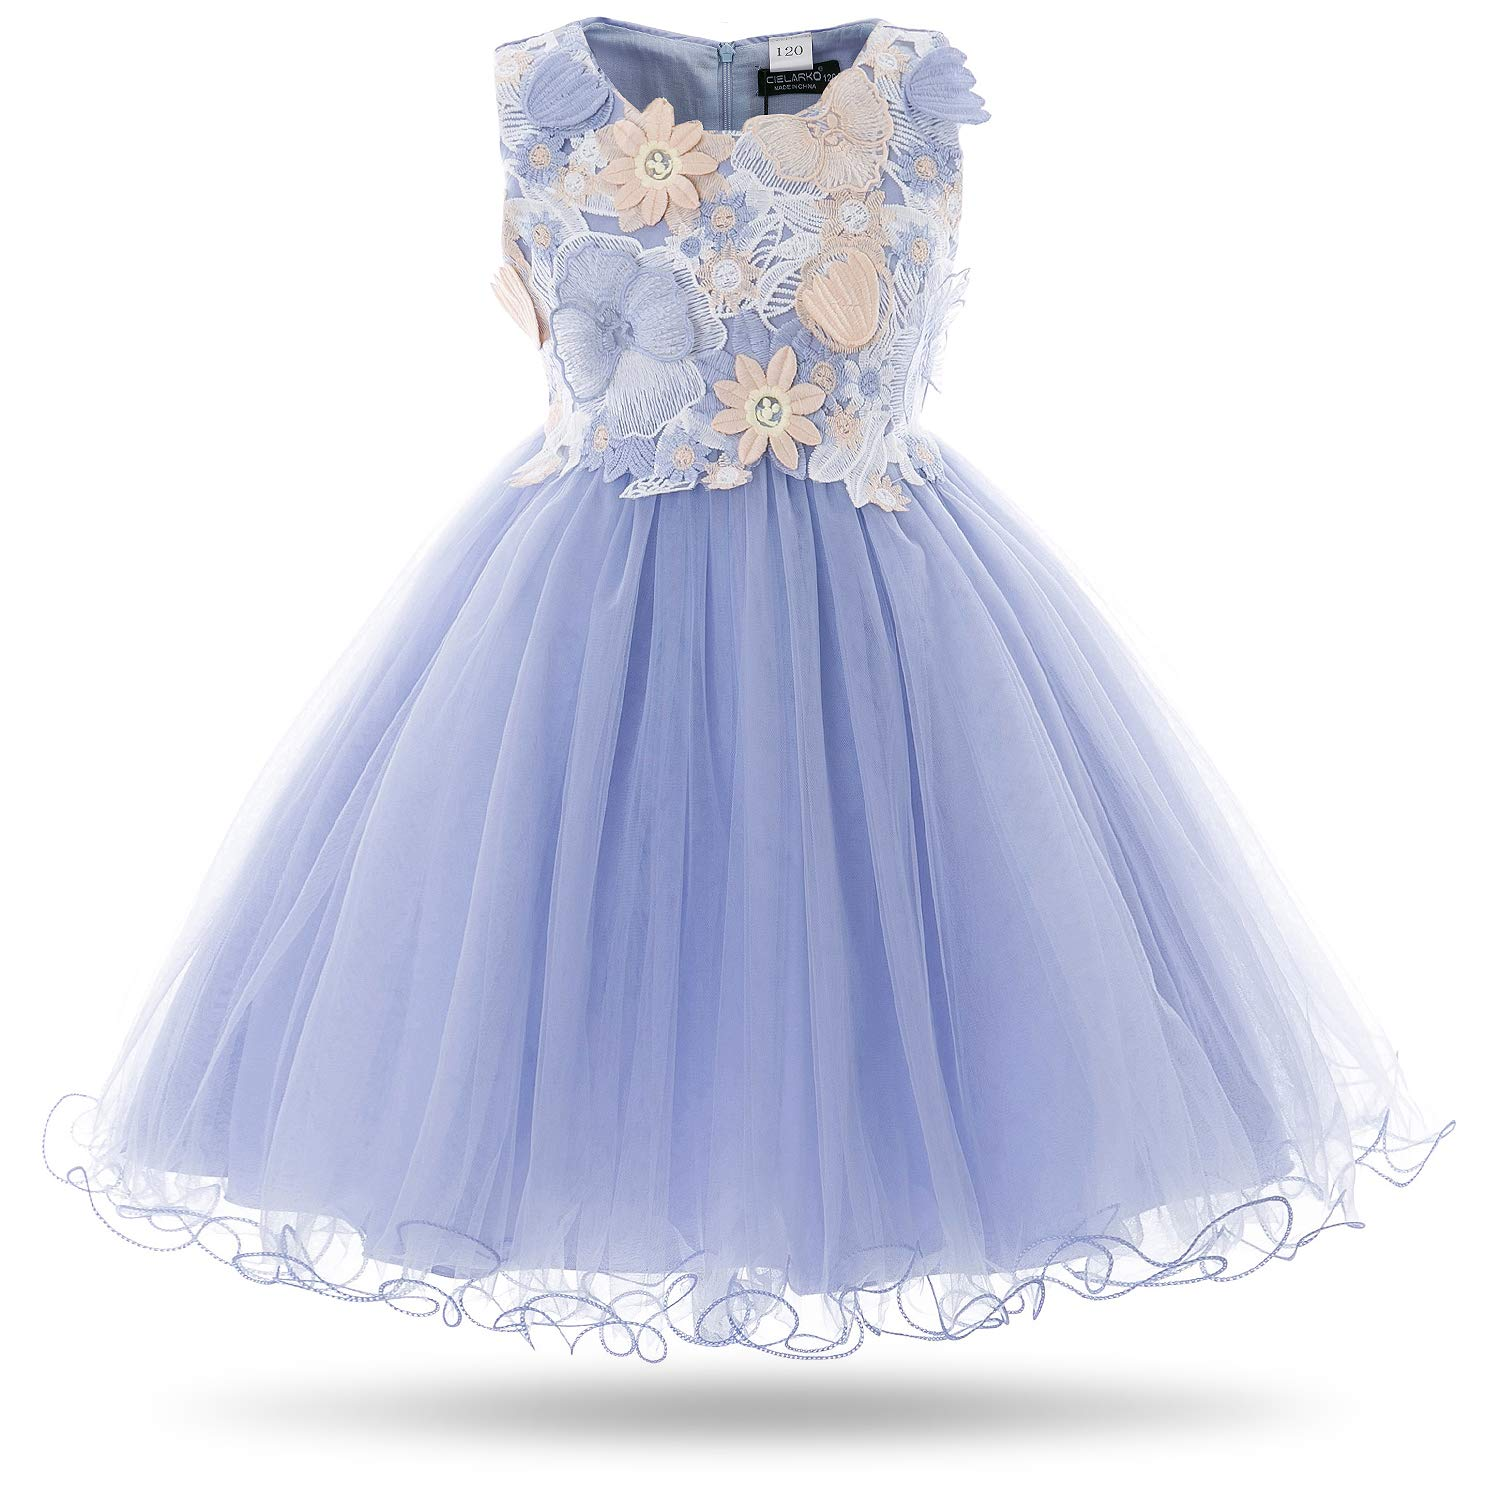 66f25a73ab Amazon.com  CIELARKO Girls Dress Kids Flower Lace Party Wedding Dresses for  2-11 Years  Clothing